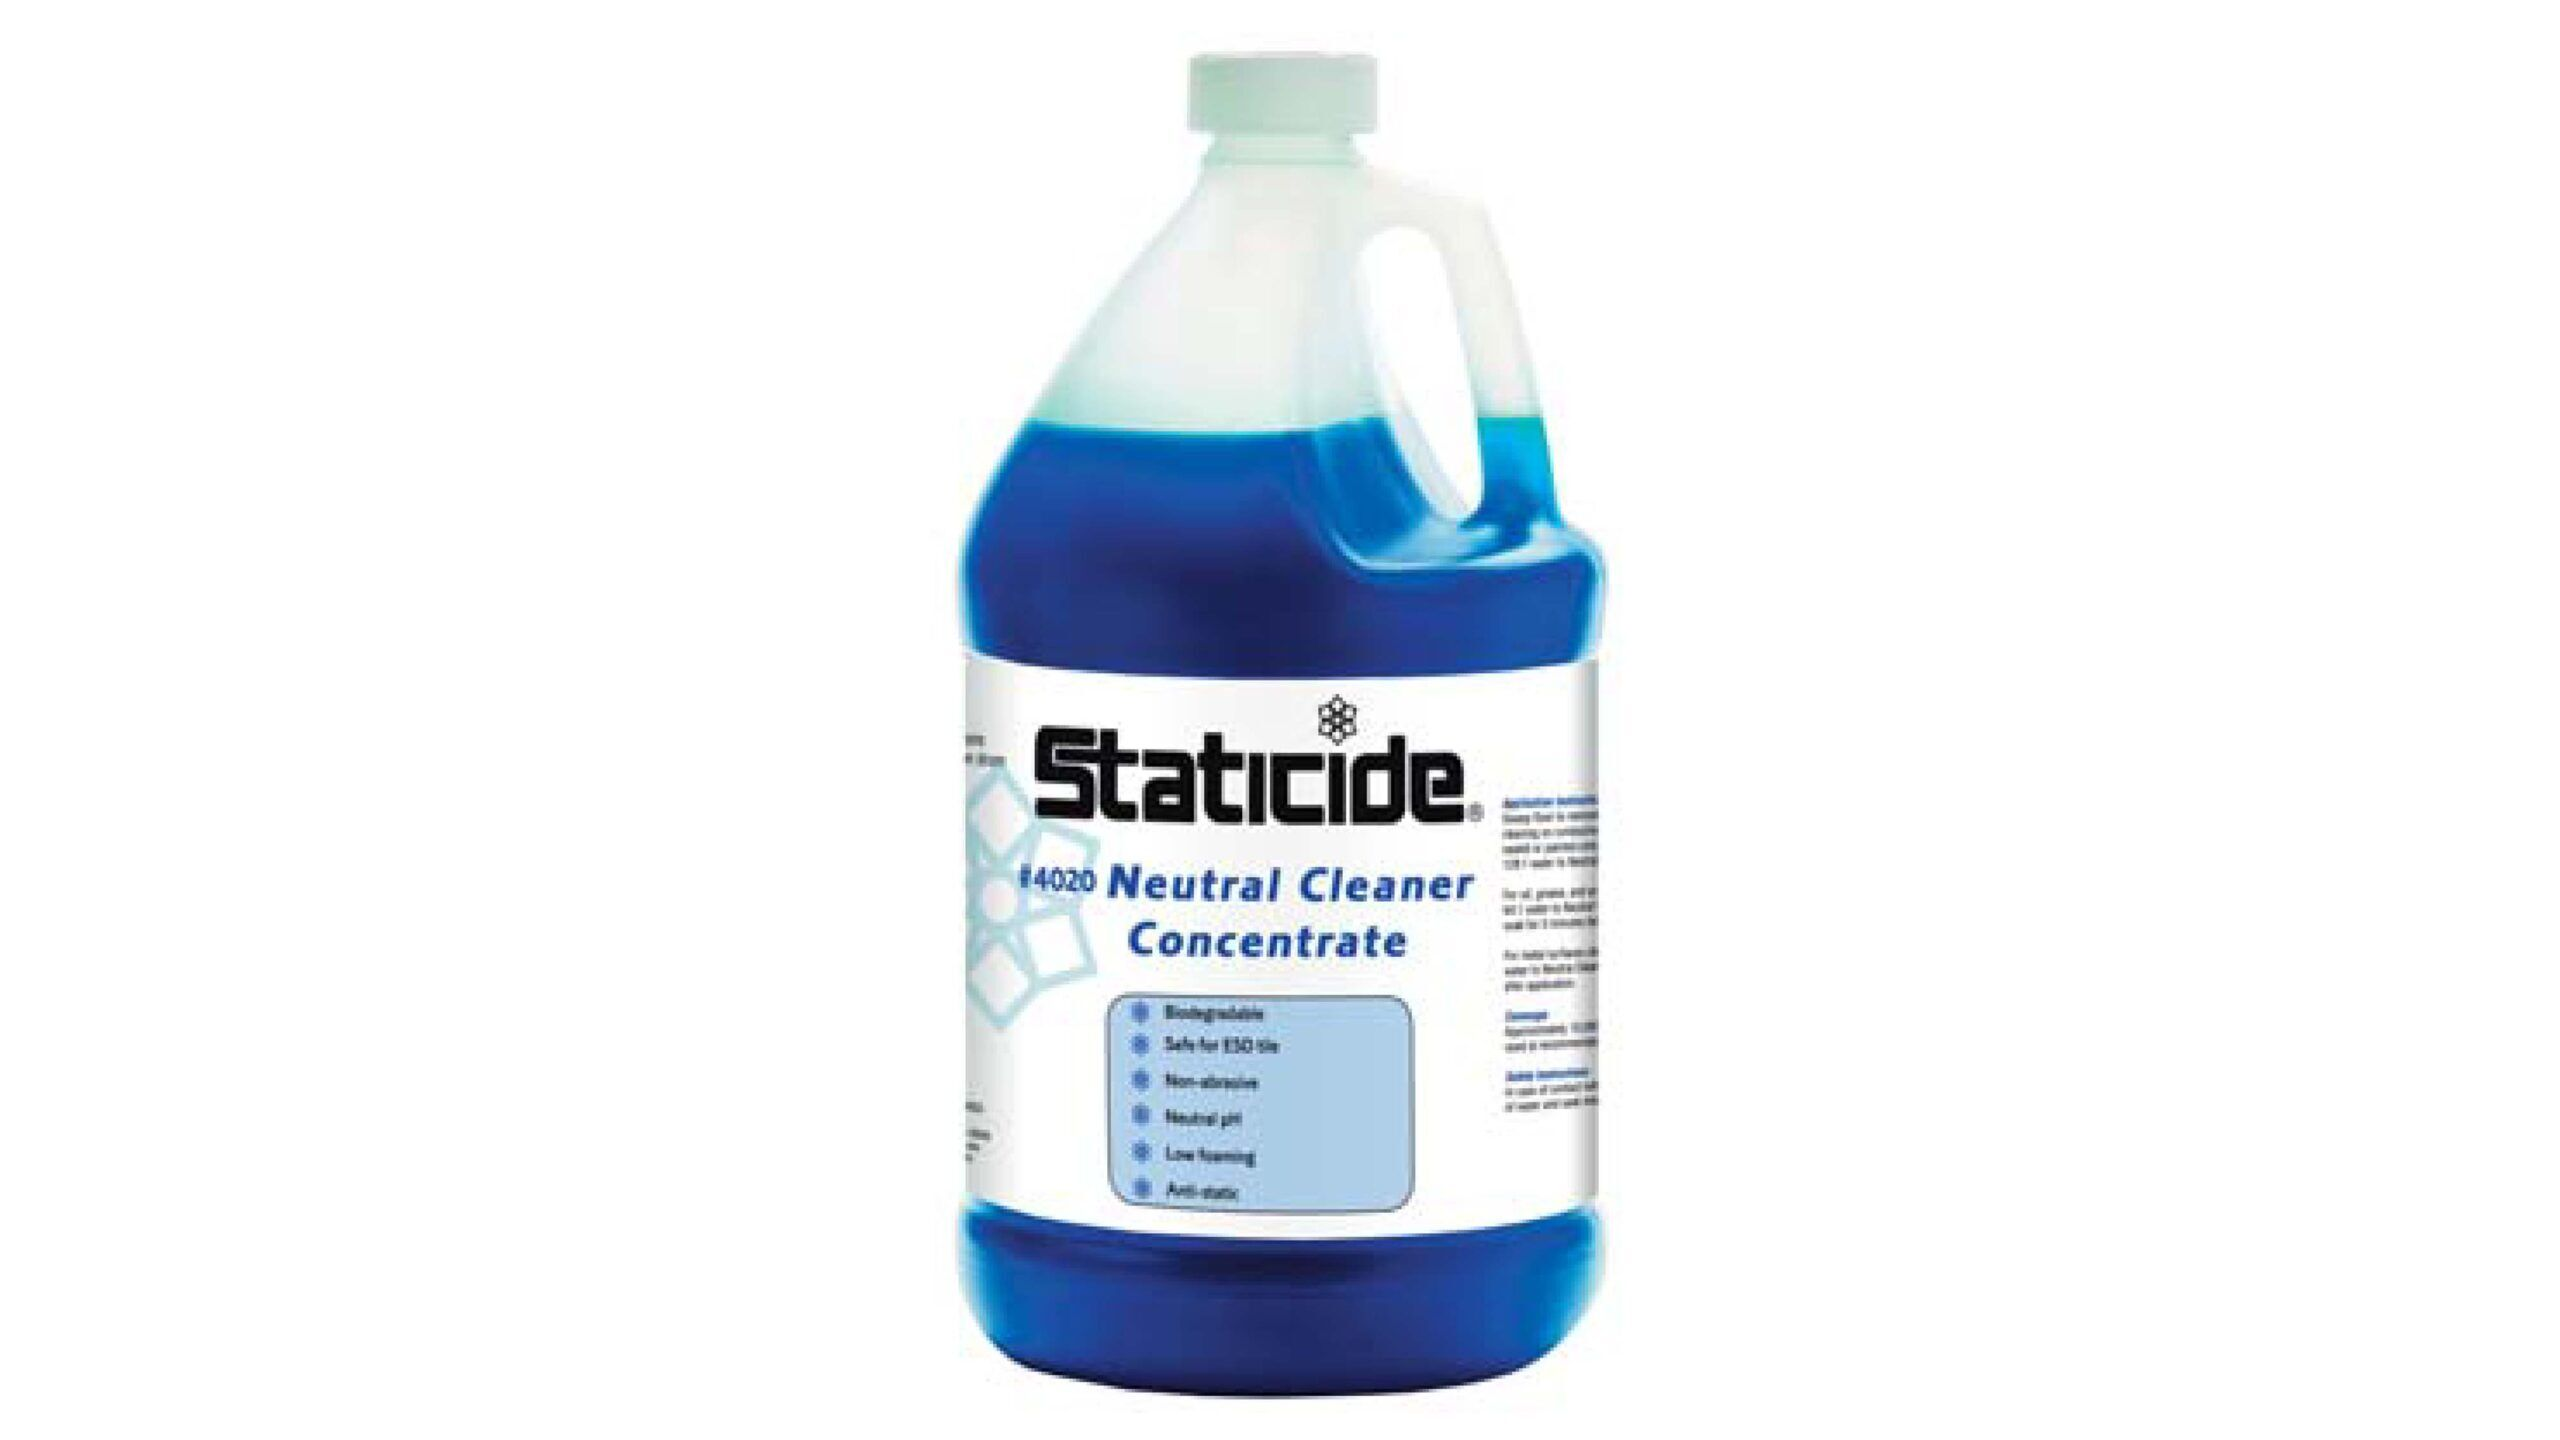 Staticide Concentrate Floor Cleaner